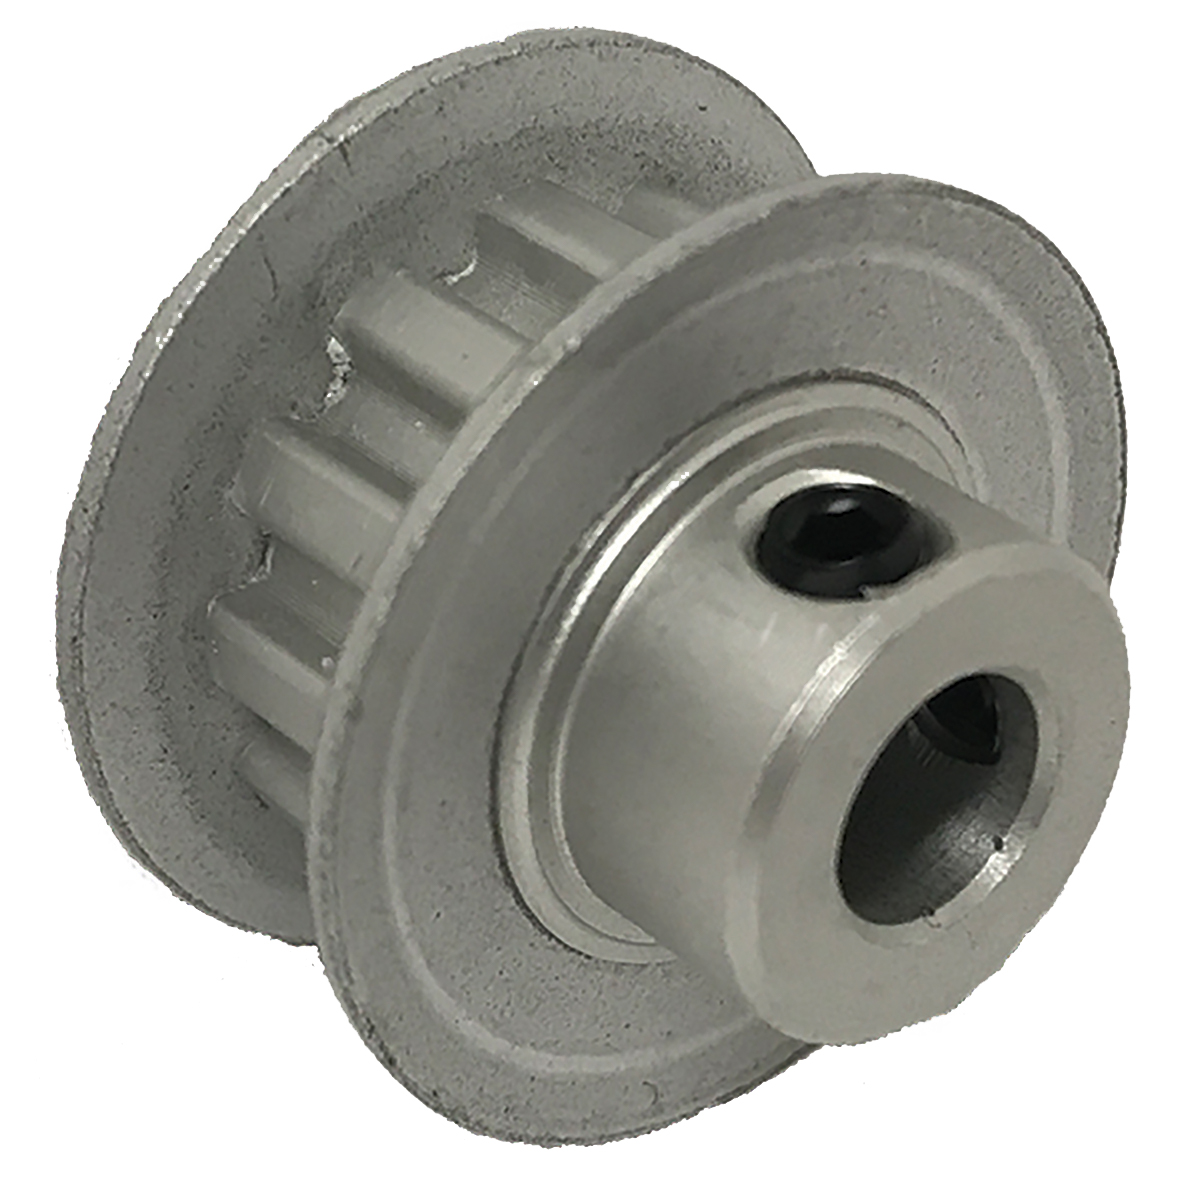 12XL025-6FA3 - Aluminum Imperial Pitch Pulleys